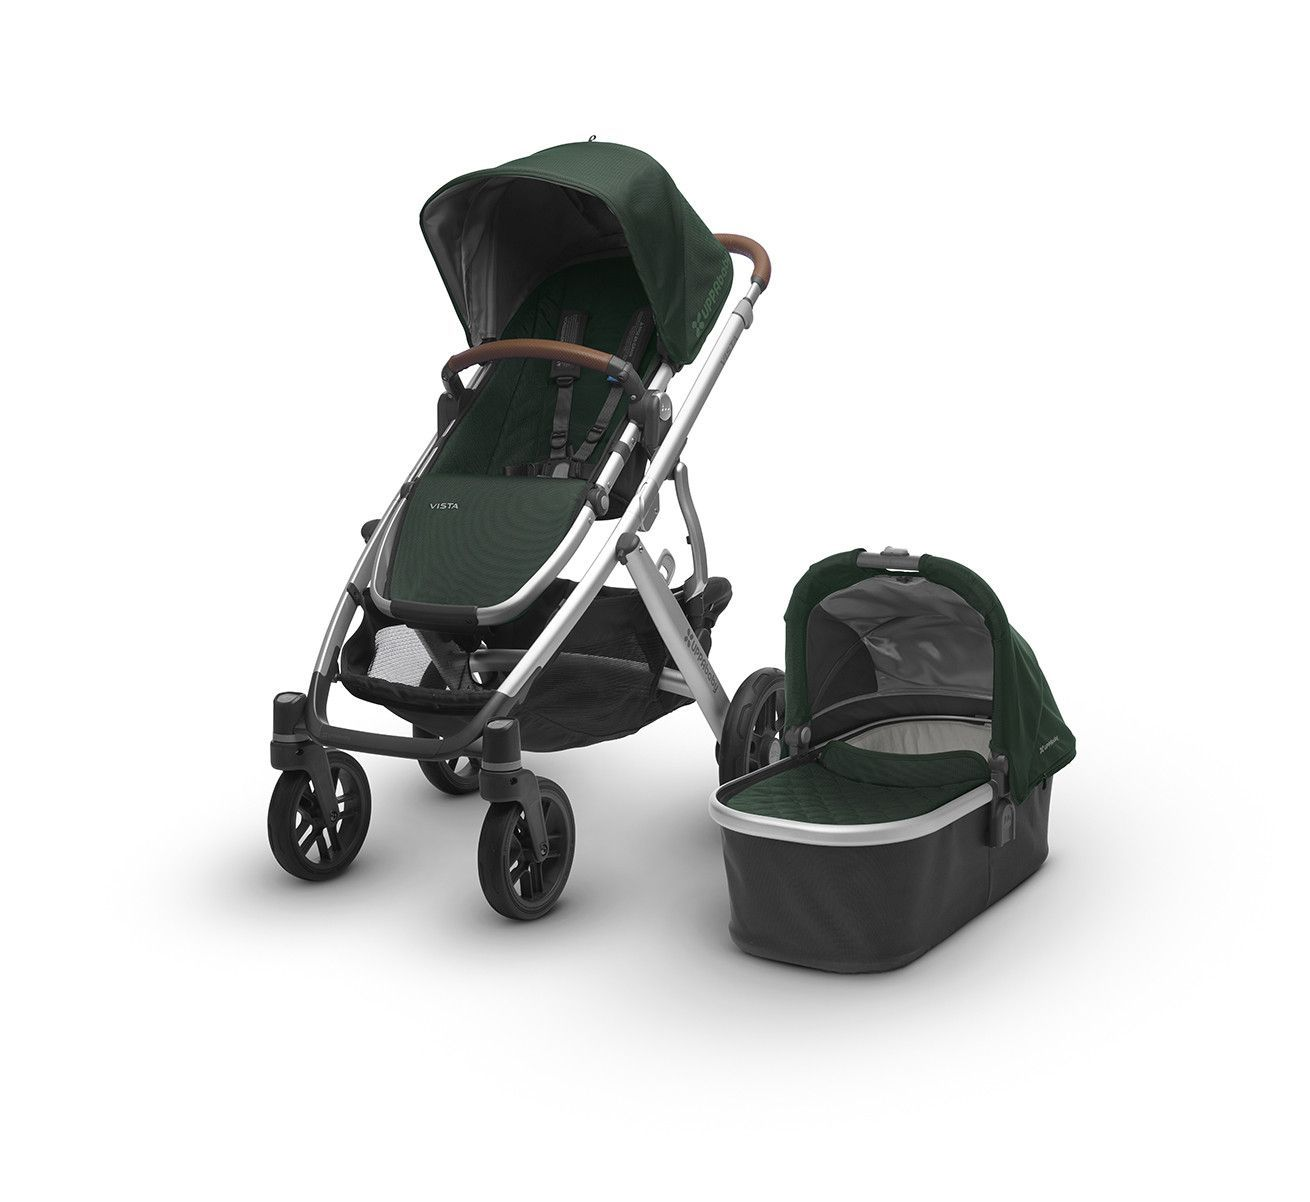 UPPAbaby Vista Single Stroller 2018 / 2019 Vista